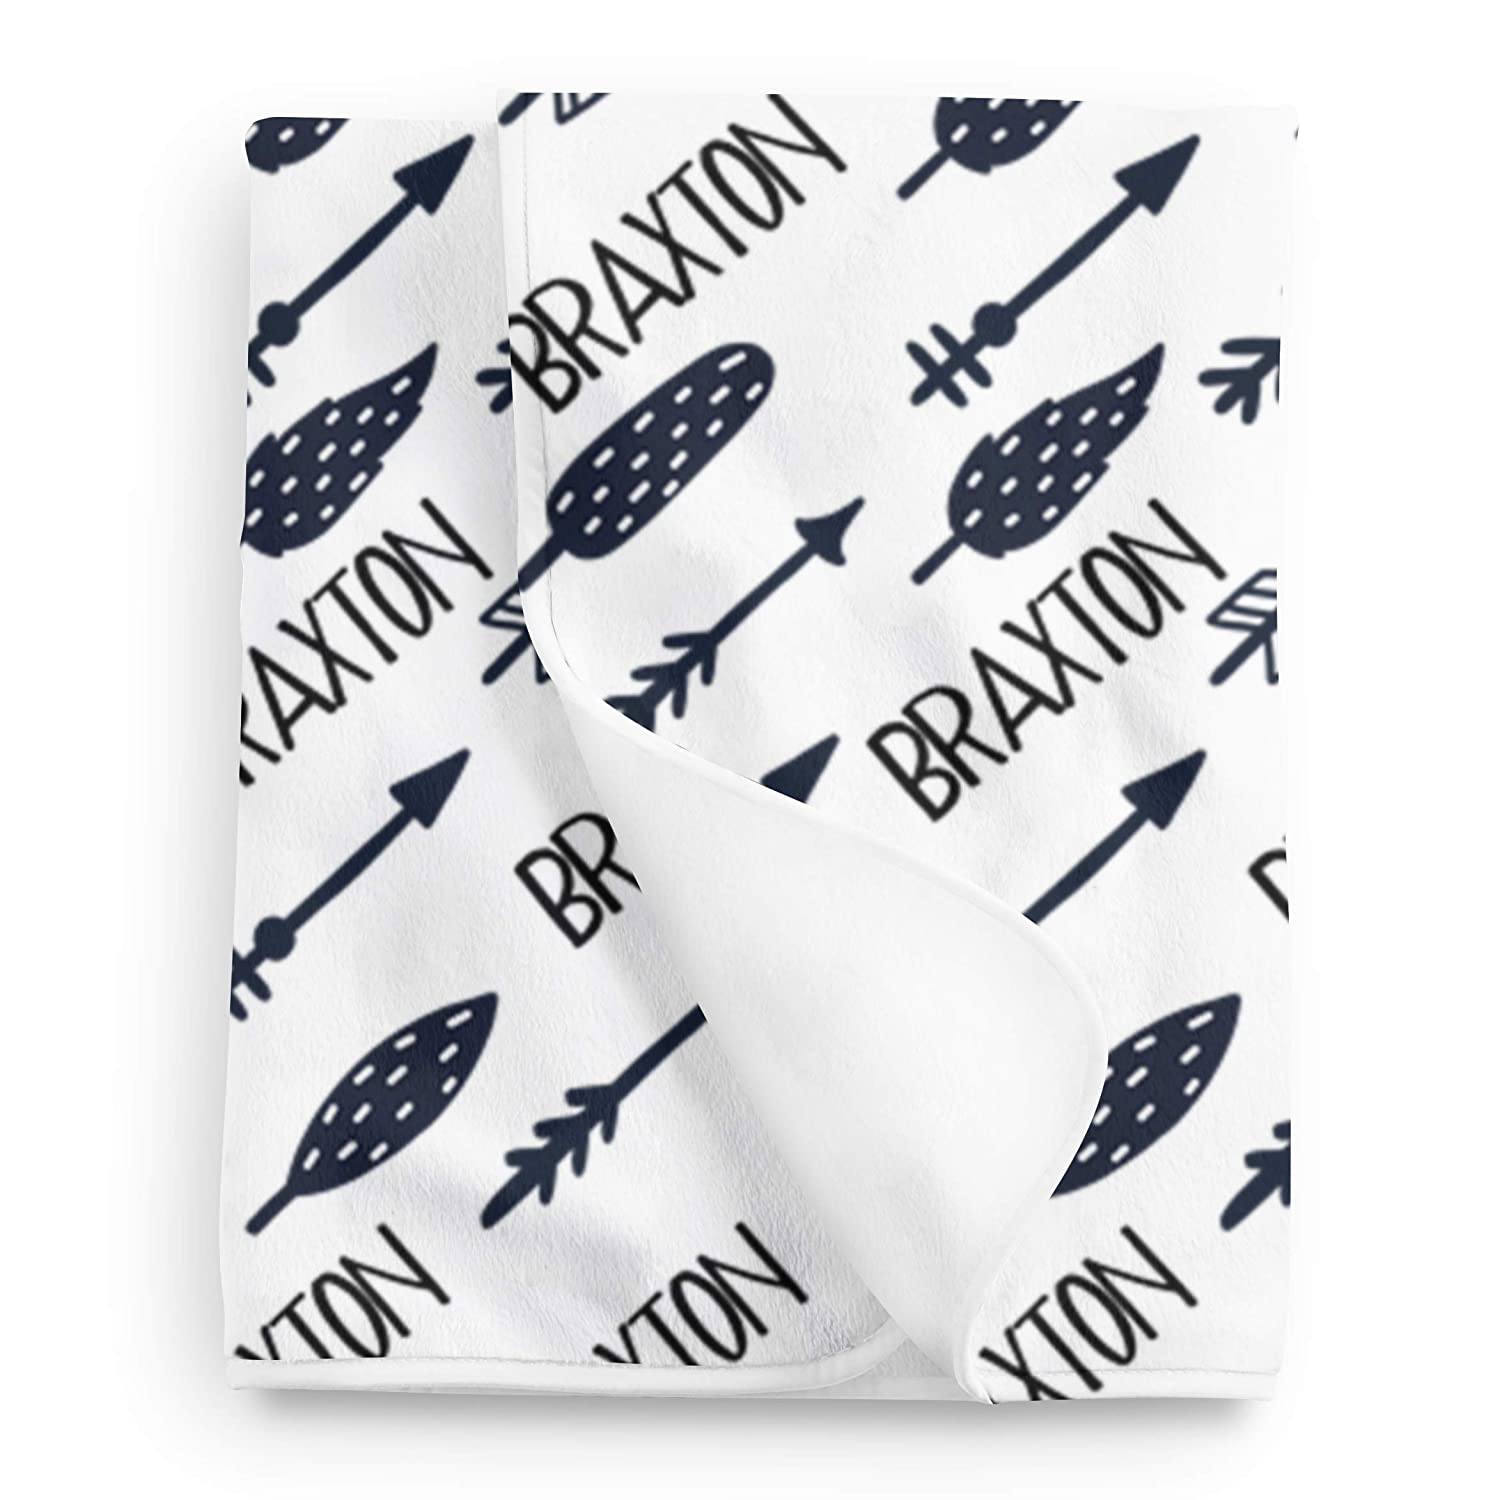 Arrow Baby Name Blanket Newborn Swaddle Personalized Baby Blanket Boy or Girl Hospital Take home Blanket Baby Shower Gift